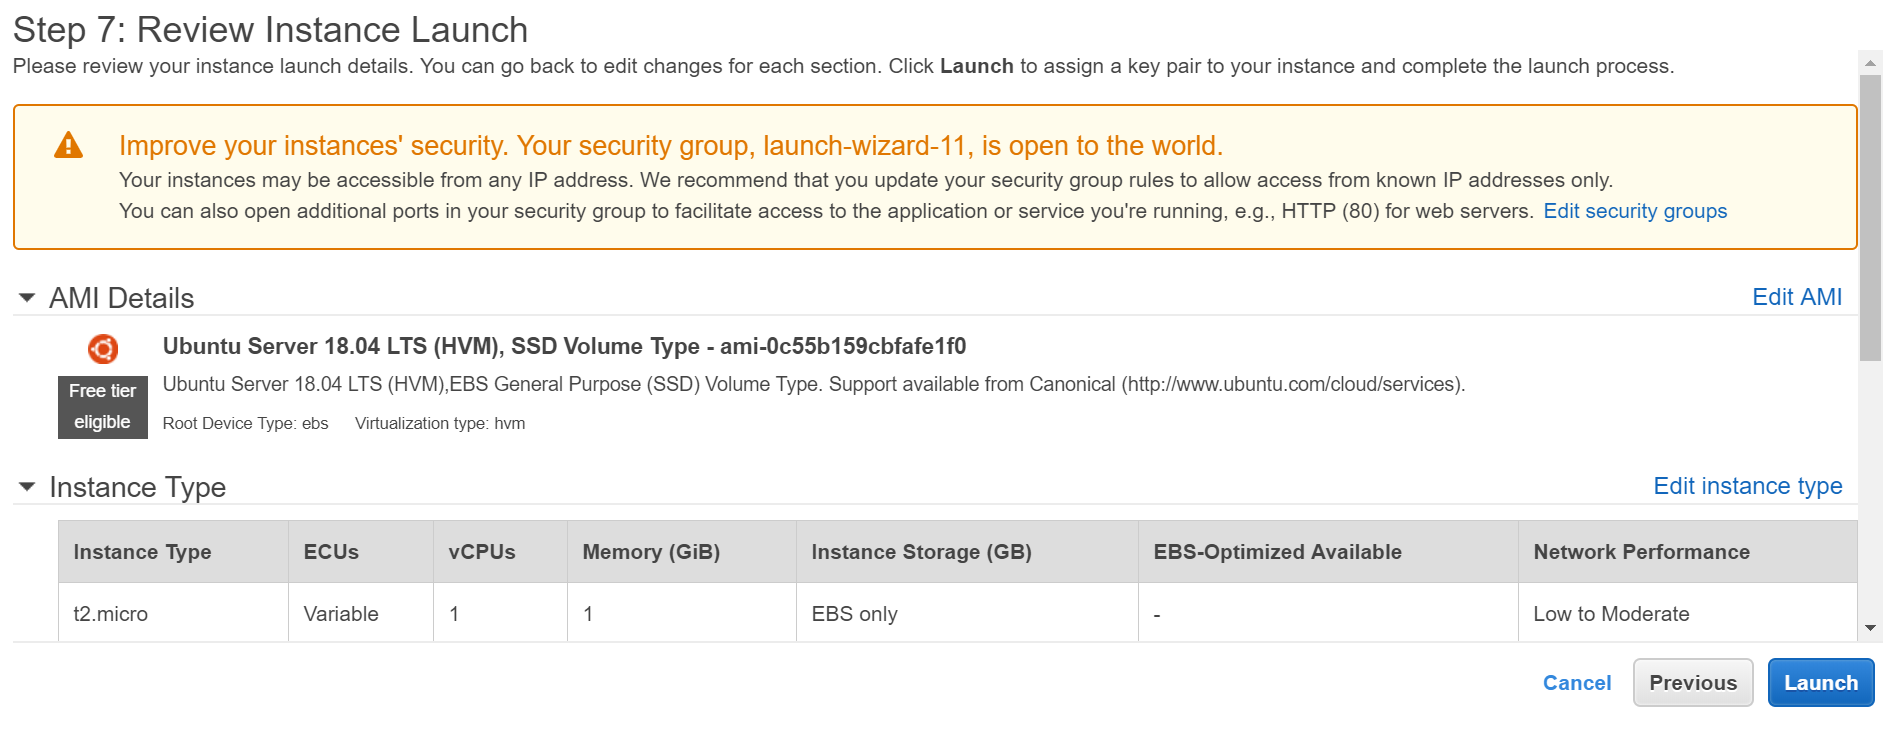 Review instance Details in AWS